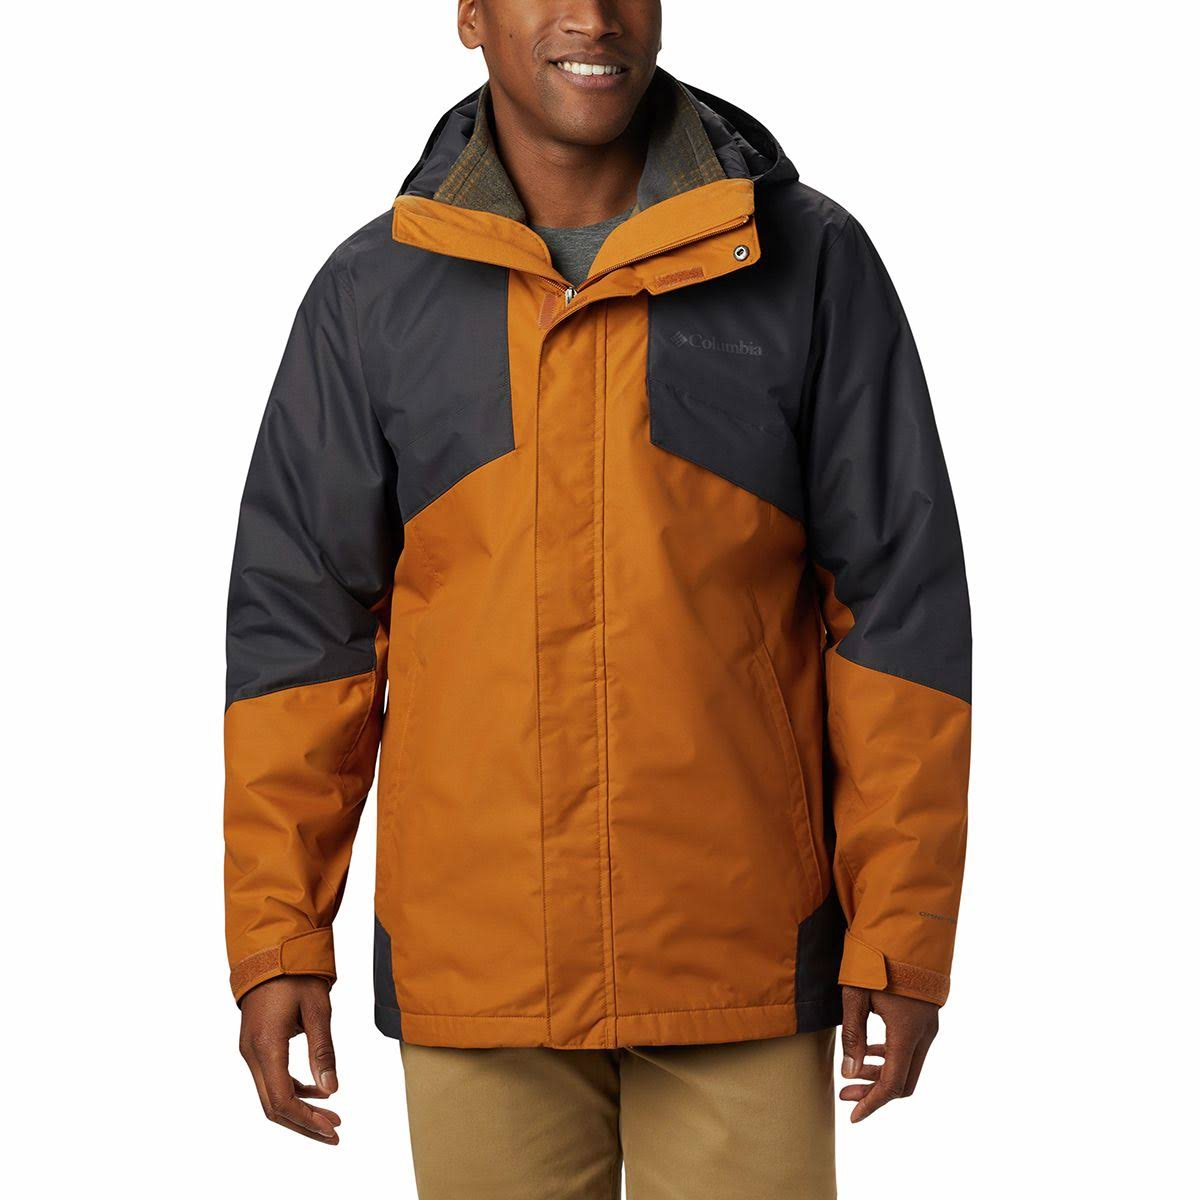 Columbia Men's Bugaboo II Fleece Interchange Jacket - Small - Burnished Amber/Shark